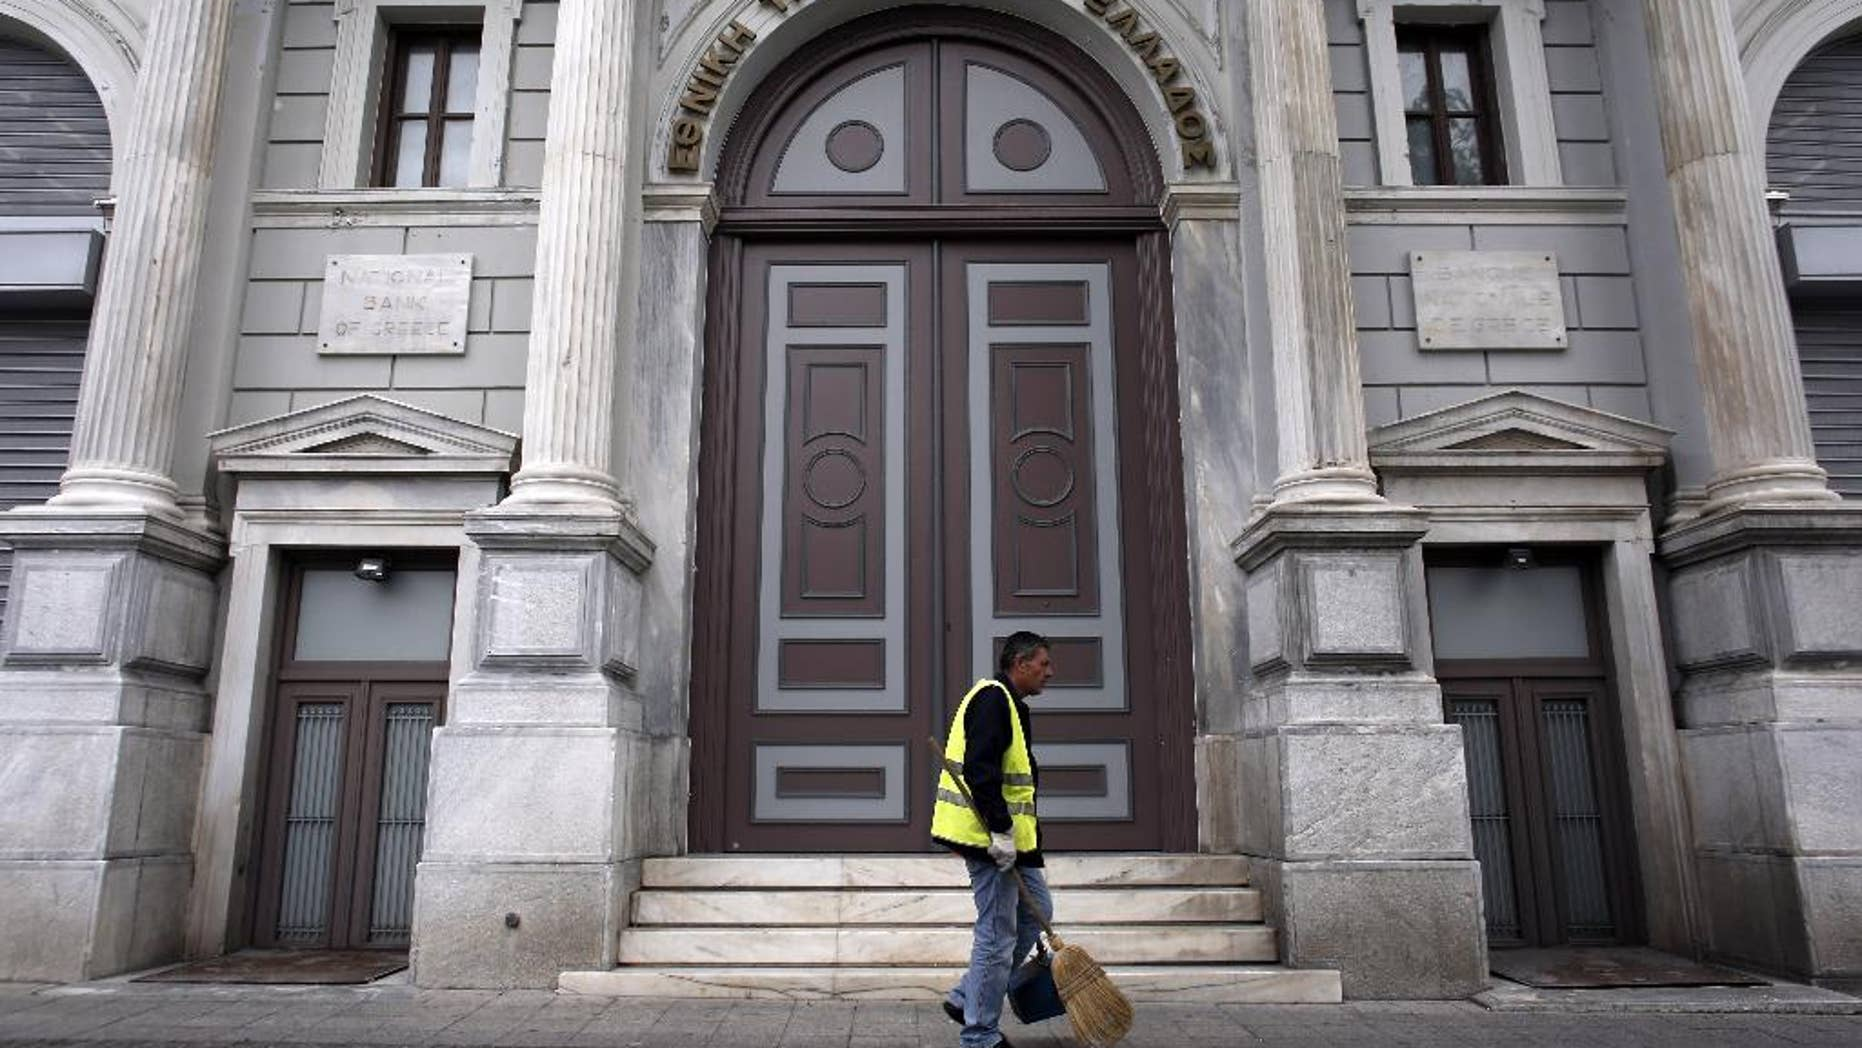 A cleaning worker walks past the headquarters of National Bank of Greece, in Athens, on Sunday, Oct. 26, 2014. The European Central Bank says 13 of Europe's 130 biggest banks have flunked an in-depth review of their finances and must increase their capital buffers against losses by 10 billion euros ($12.5 billion). The ECB said 25 banks in all were found to need stronger buffers — but that 12 have already made up their shortfall. The remaining 13 now have two weeks to tell the ECB how they plan to increase their capital buffers. (AP Photo/Kostas Tsironis)